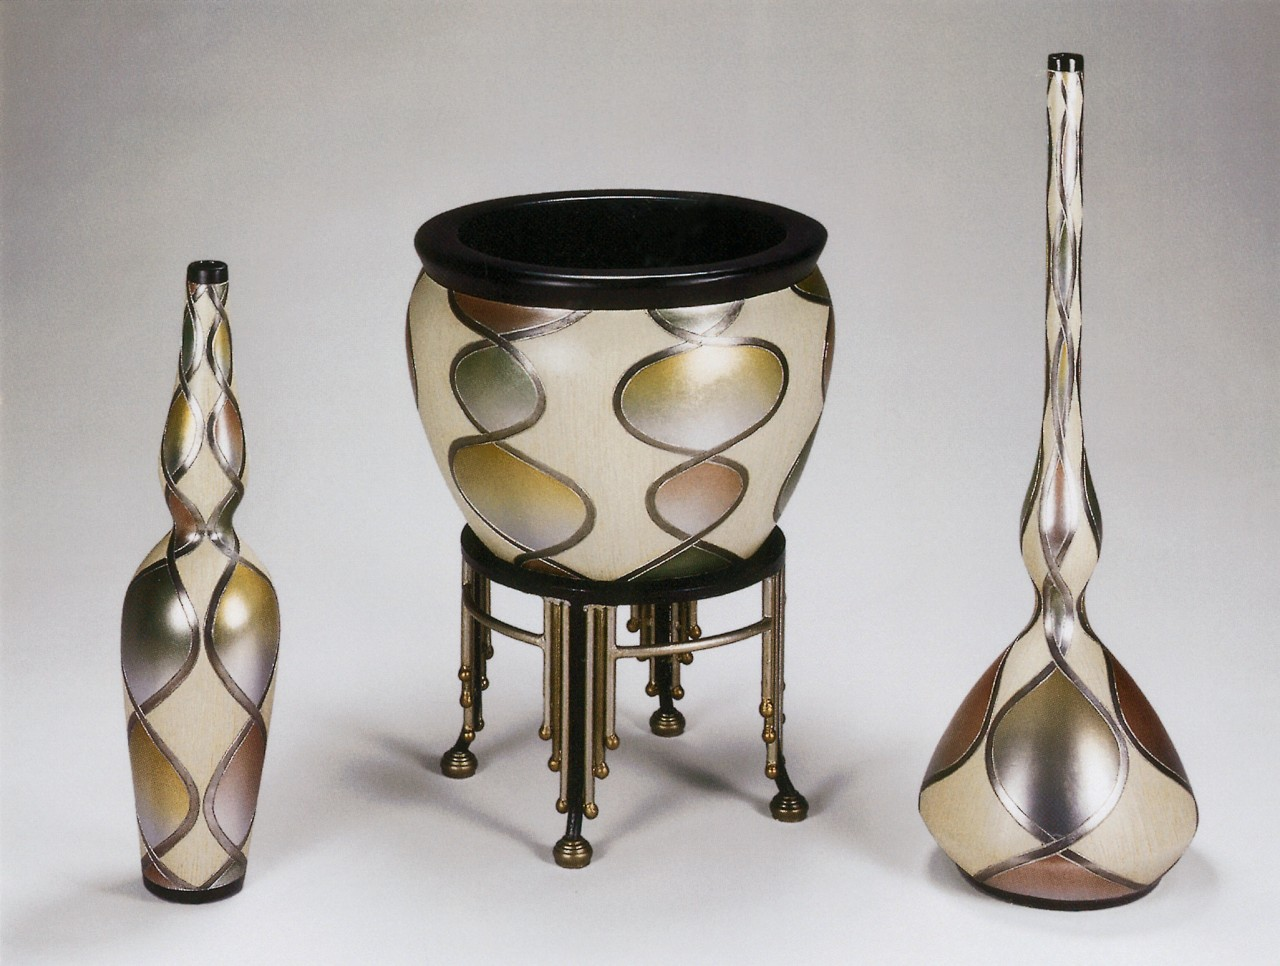 Objects on foreground brass, metal, product design, tableware, gray